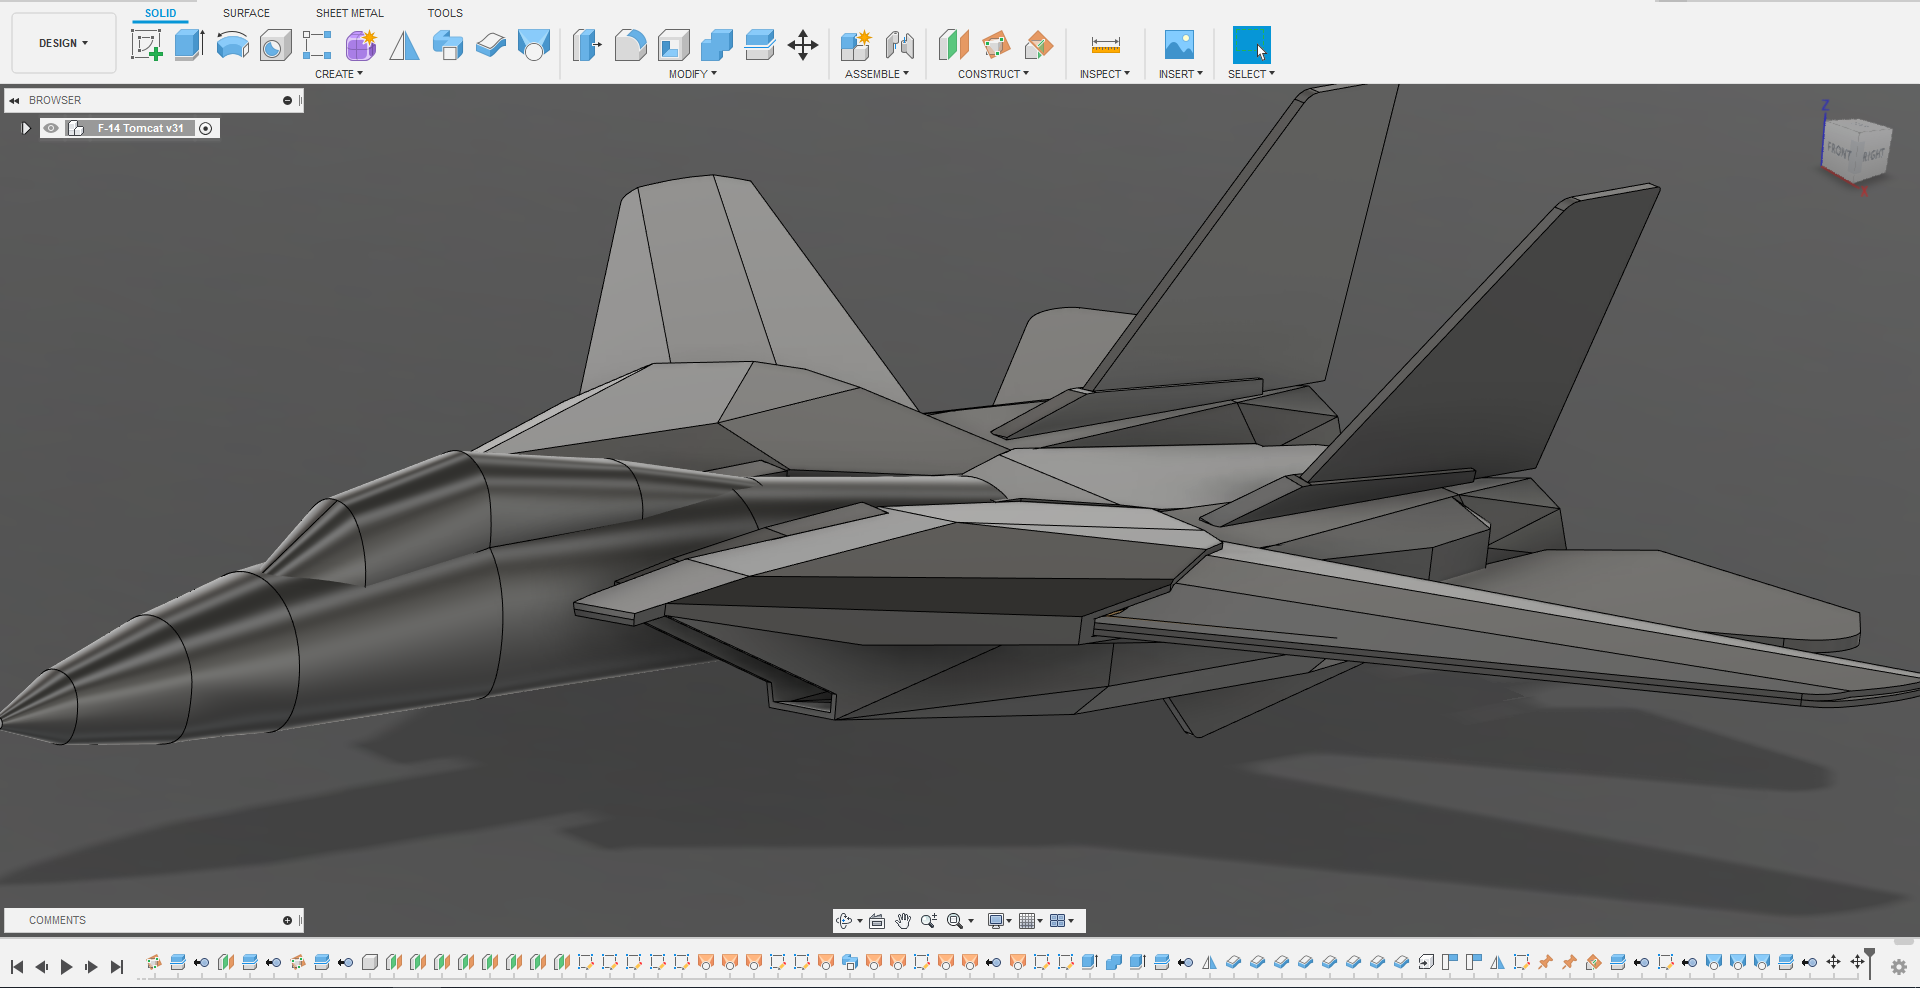 F-14 Tomcat preview 19.PNG